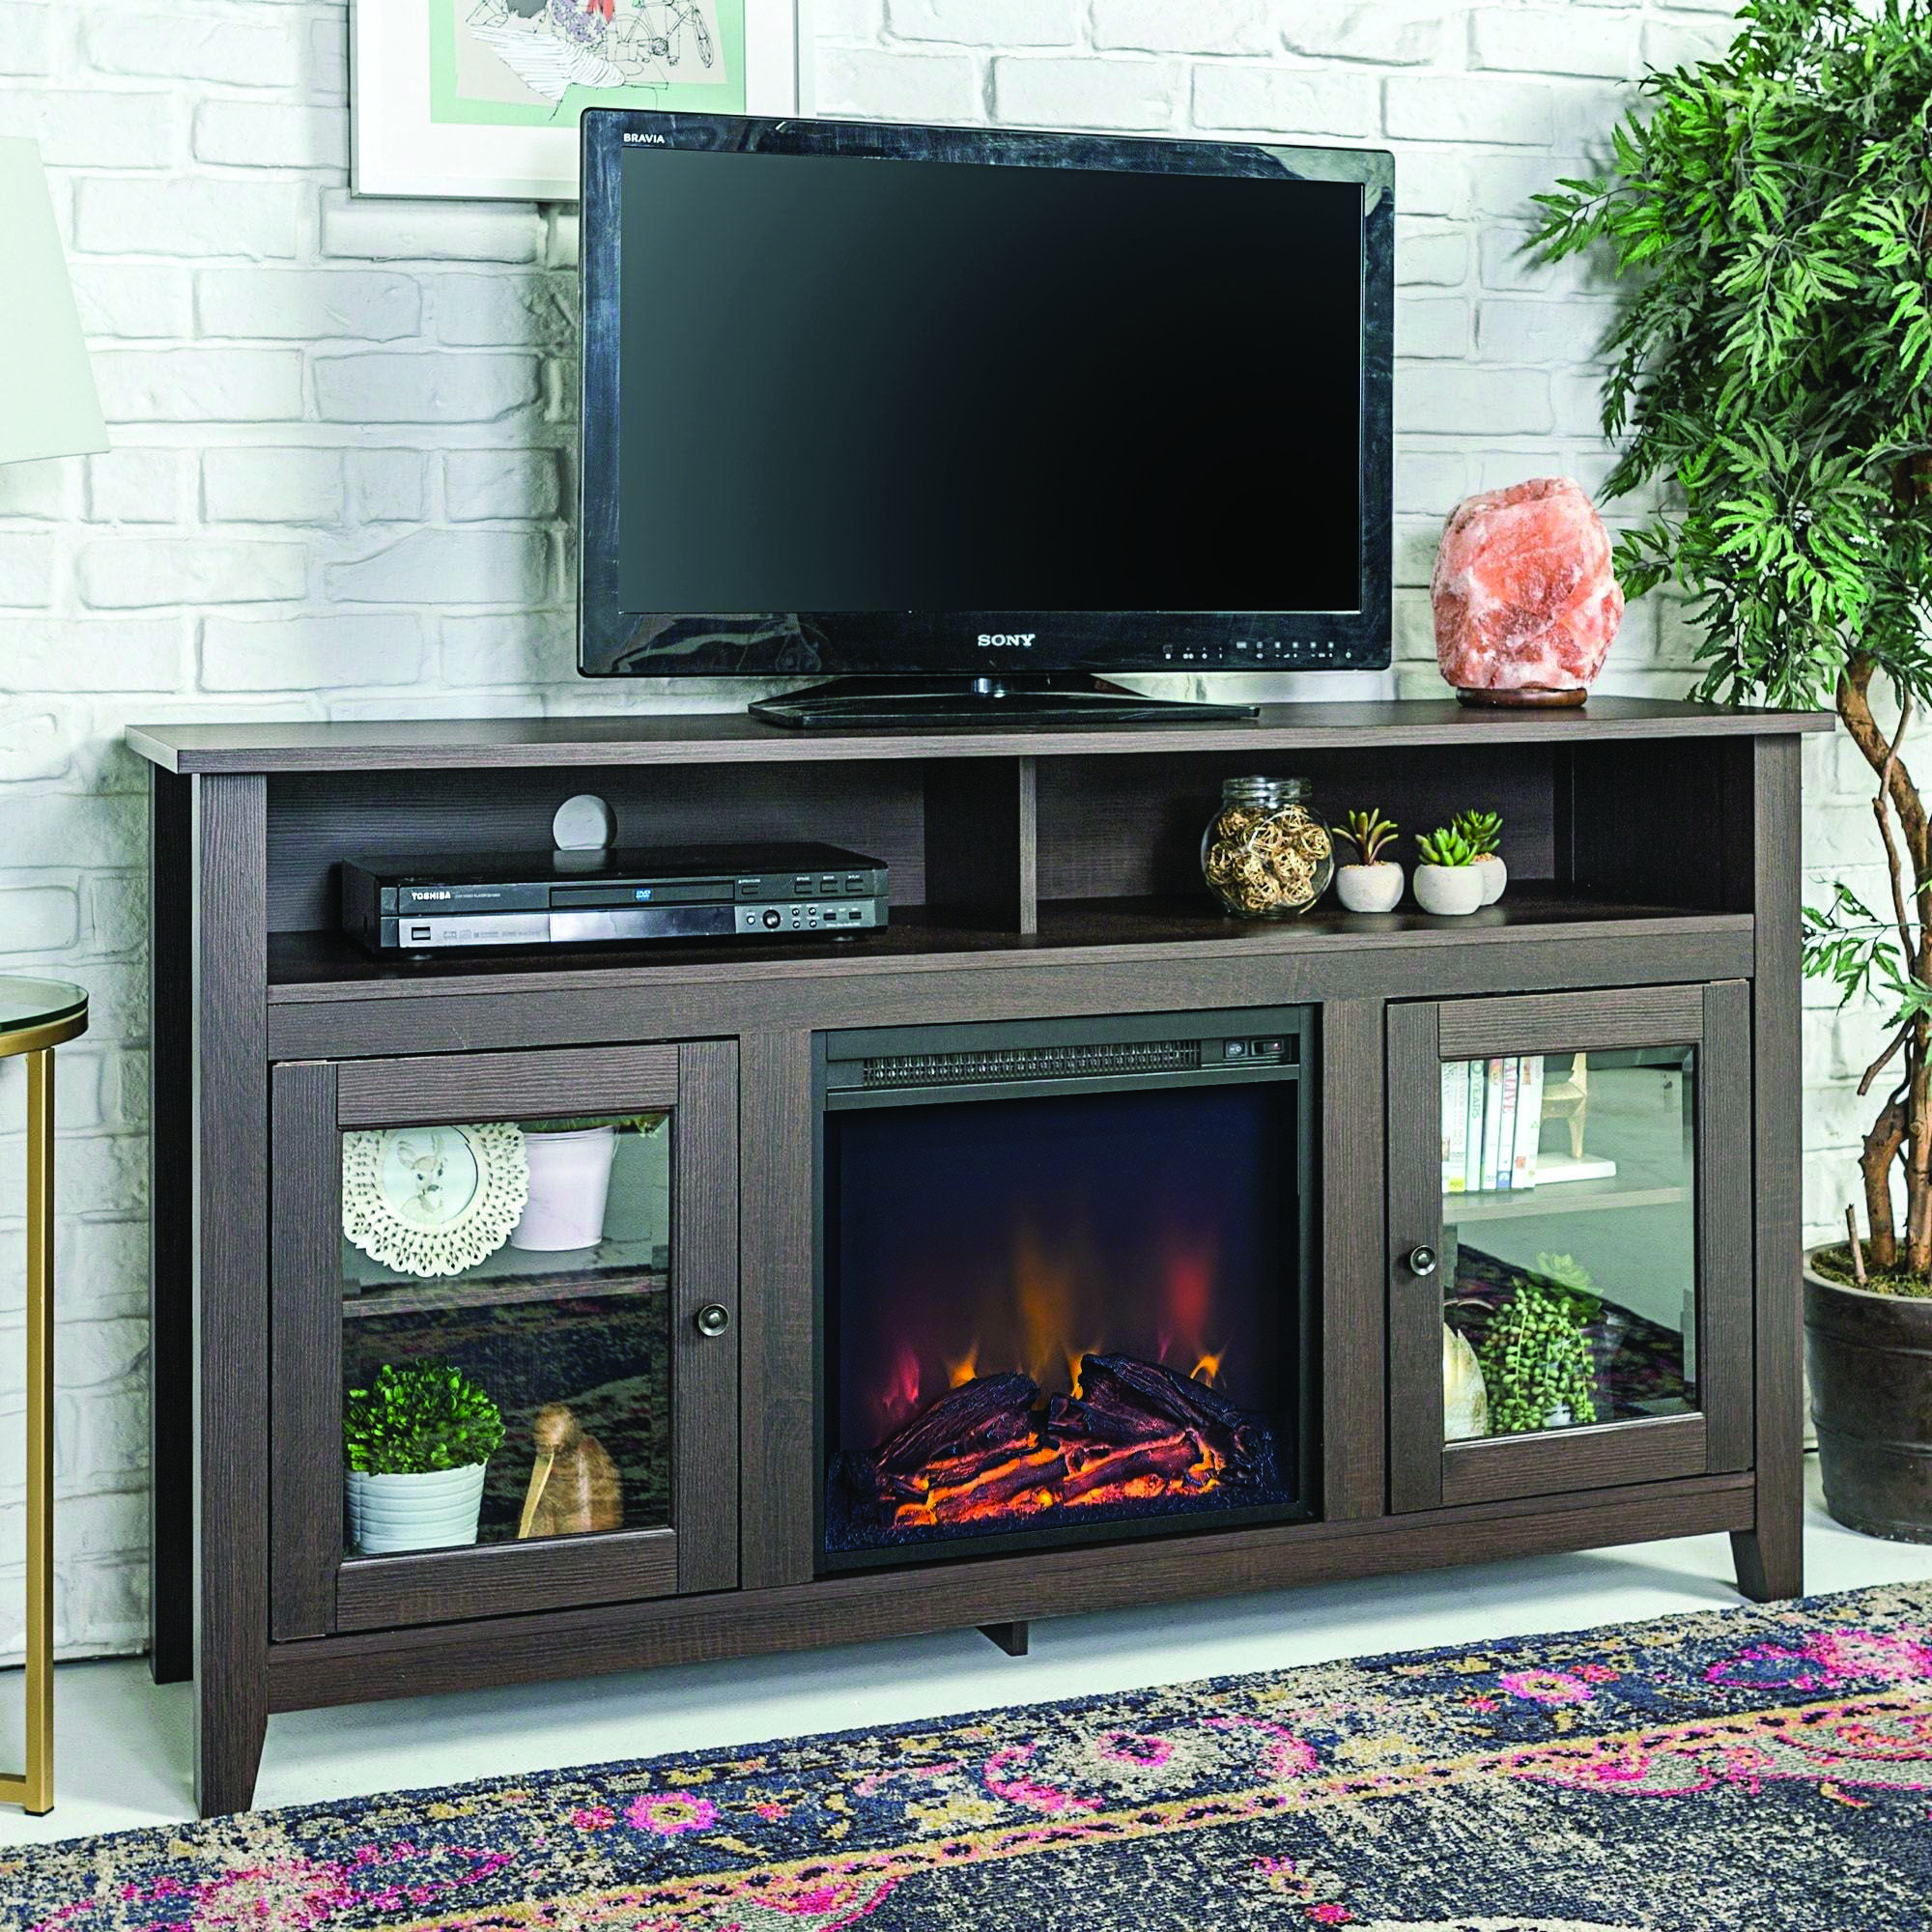 Incredible Fireplace Tv Stand Costco Uk You Ll Love Fireplace